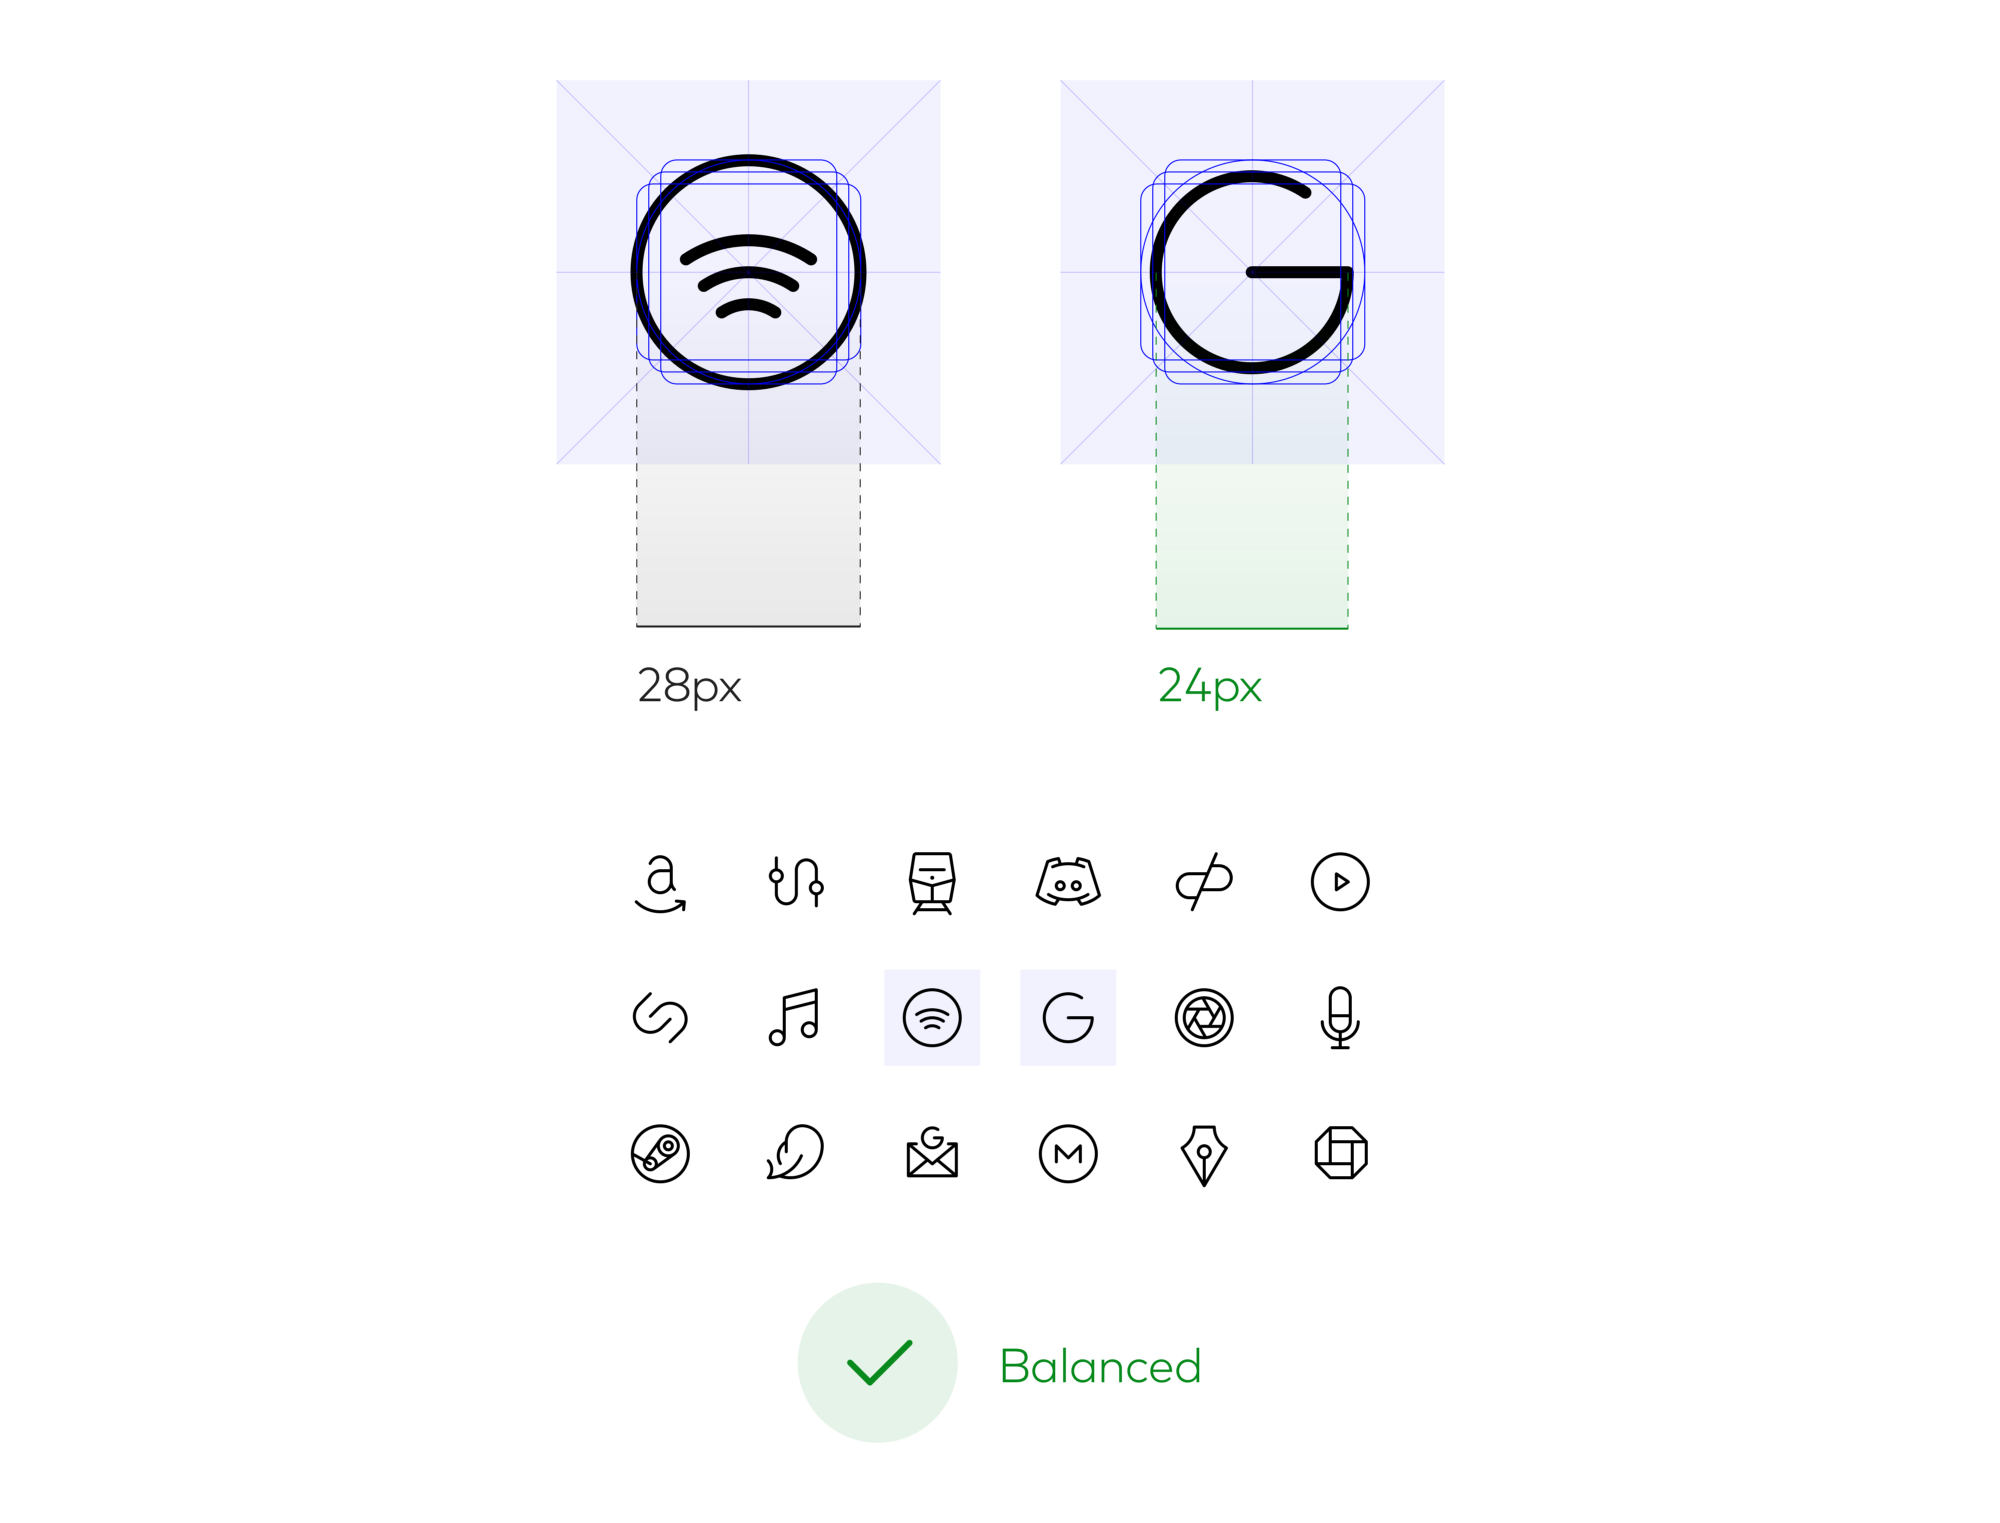 """Scaling the Google """"G"""" down 4px in diameter help balance it visually with the set"""